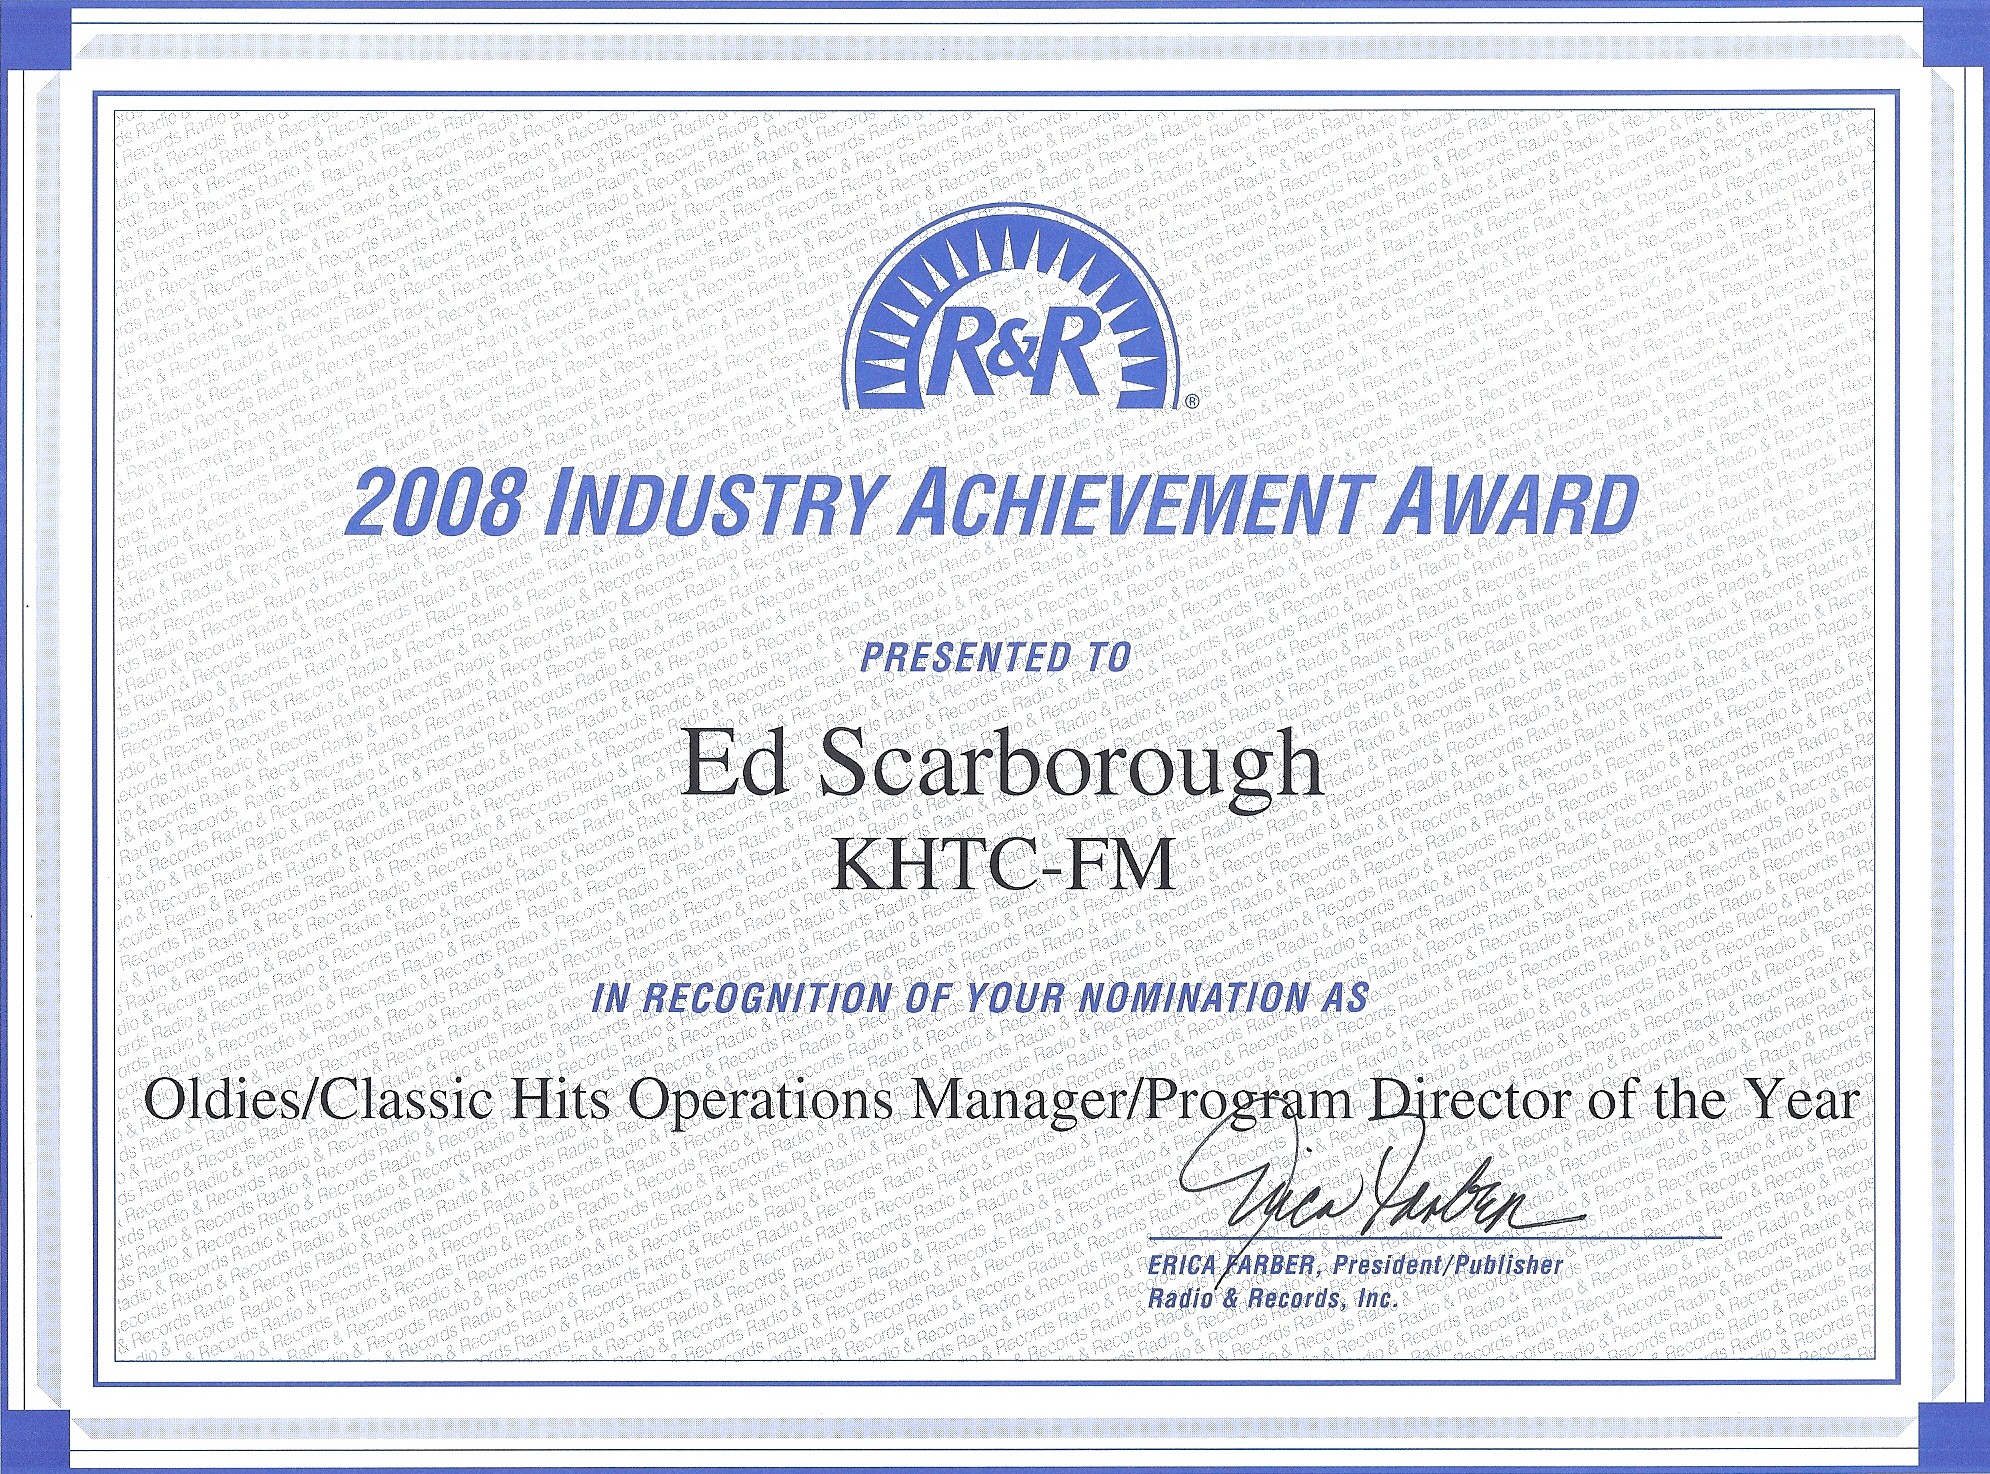 2008 Radio & Records Industry Achievement Award